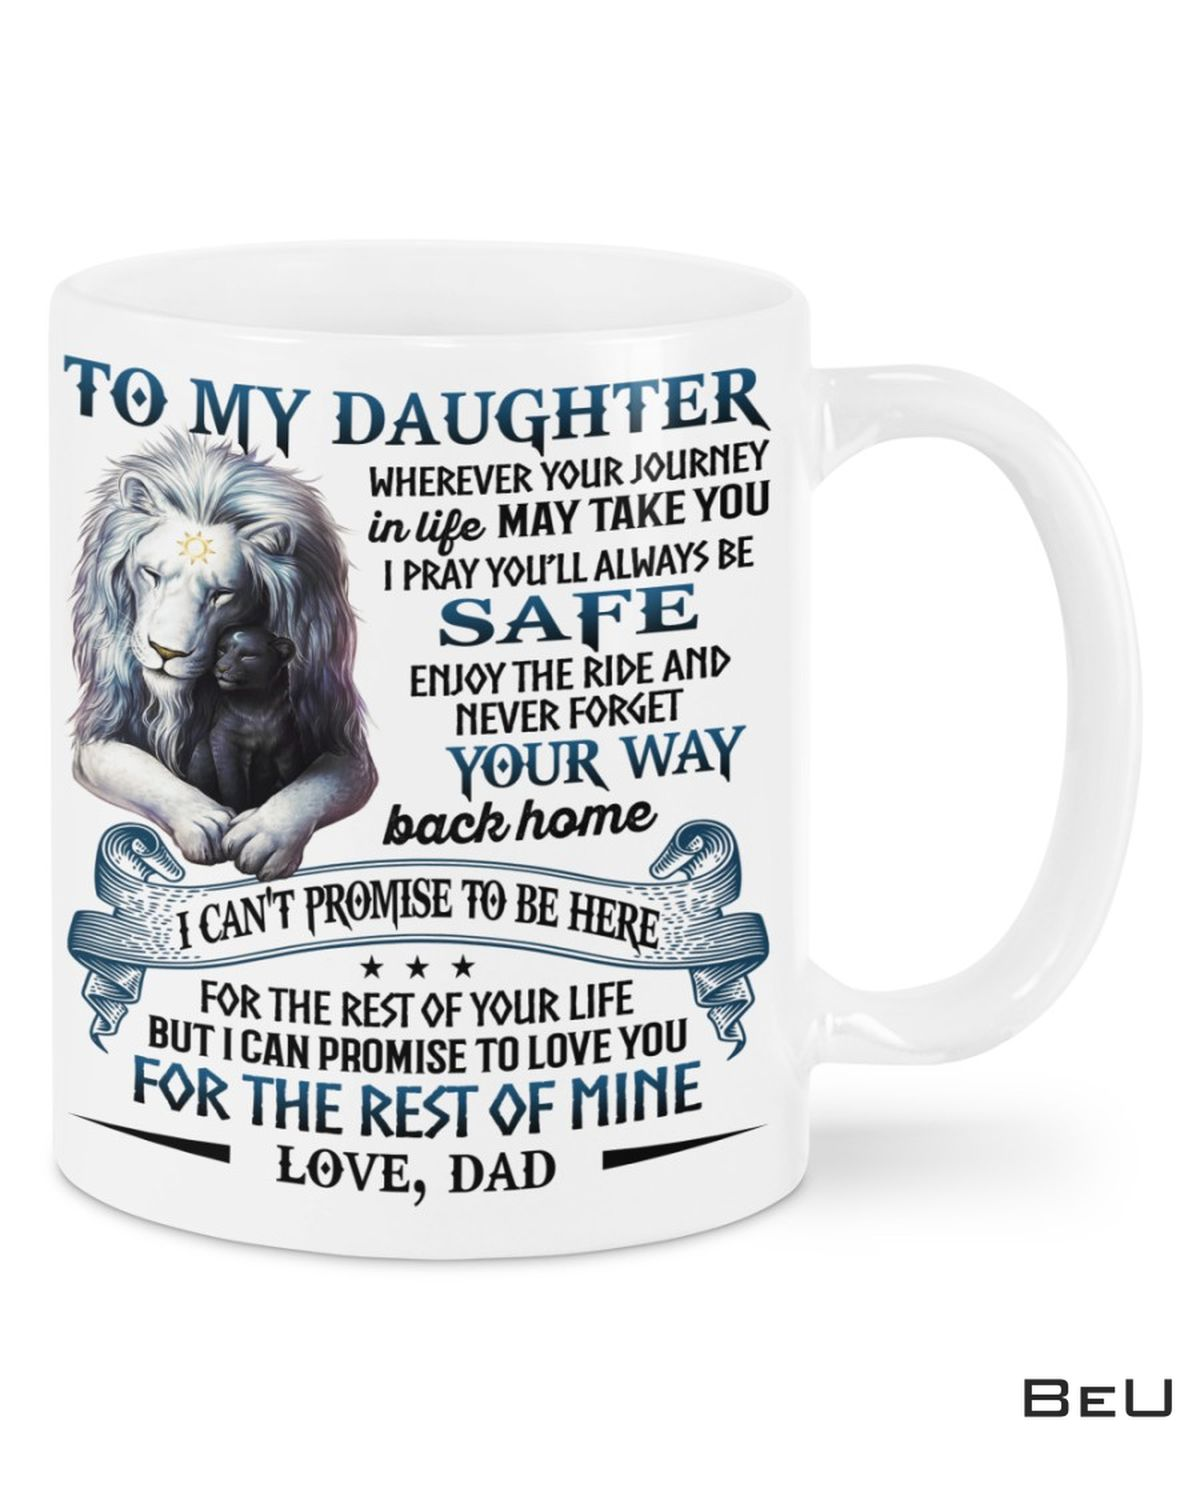 To My Daughter Promise To Love You For The Rest Of Mine Lion Mug